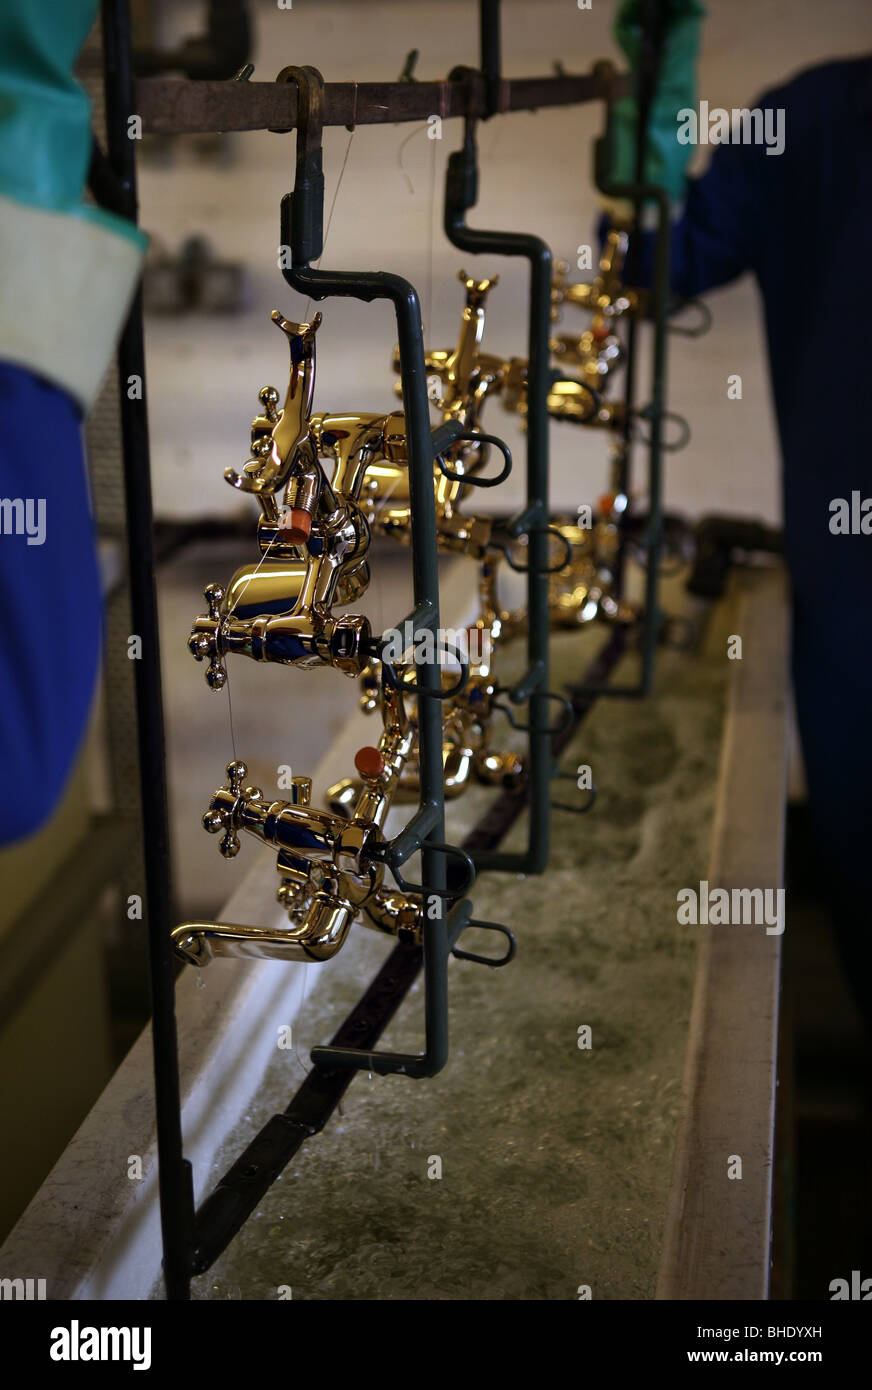 gold plating bathroom taps in the UK - Stock Image